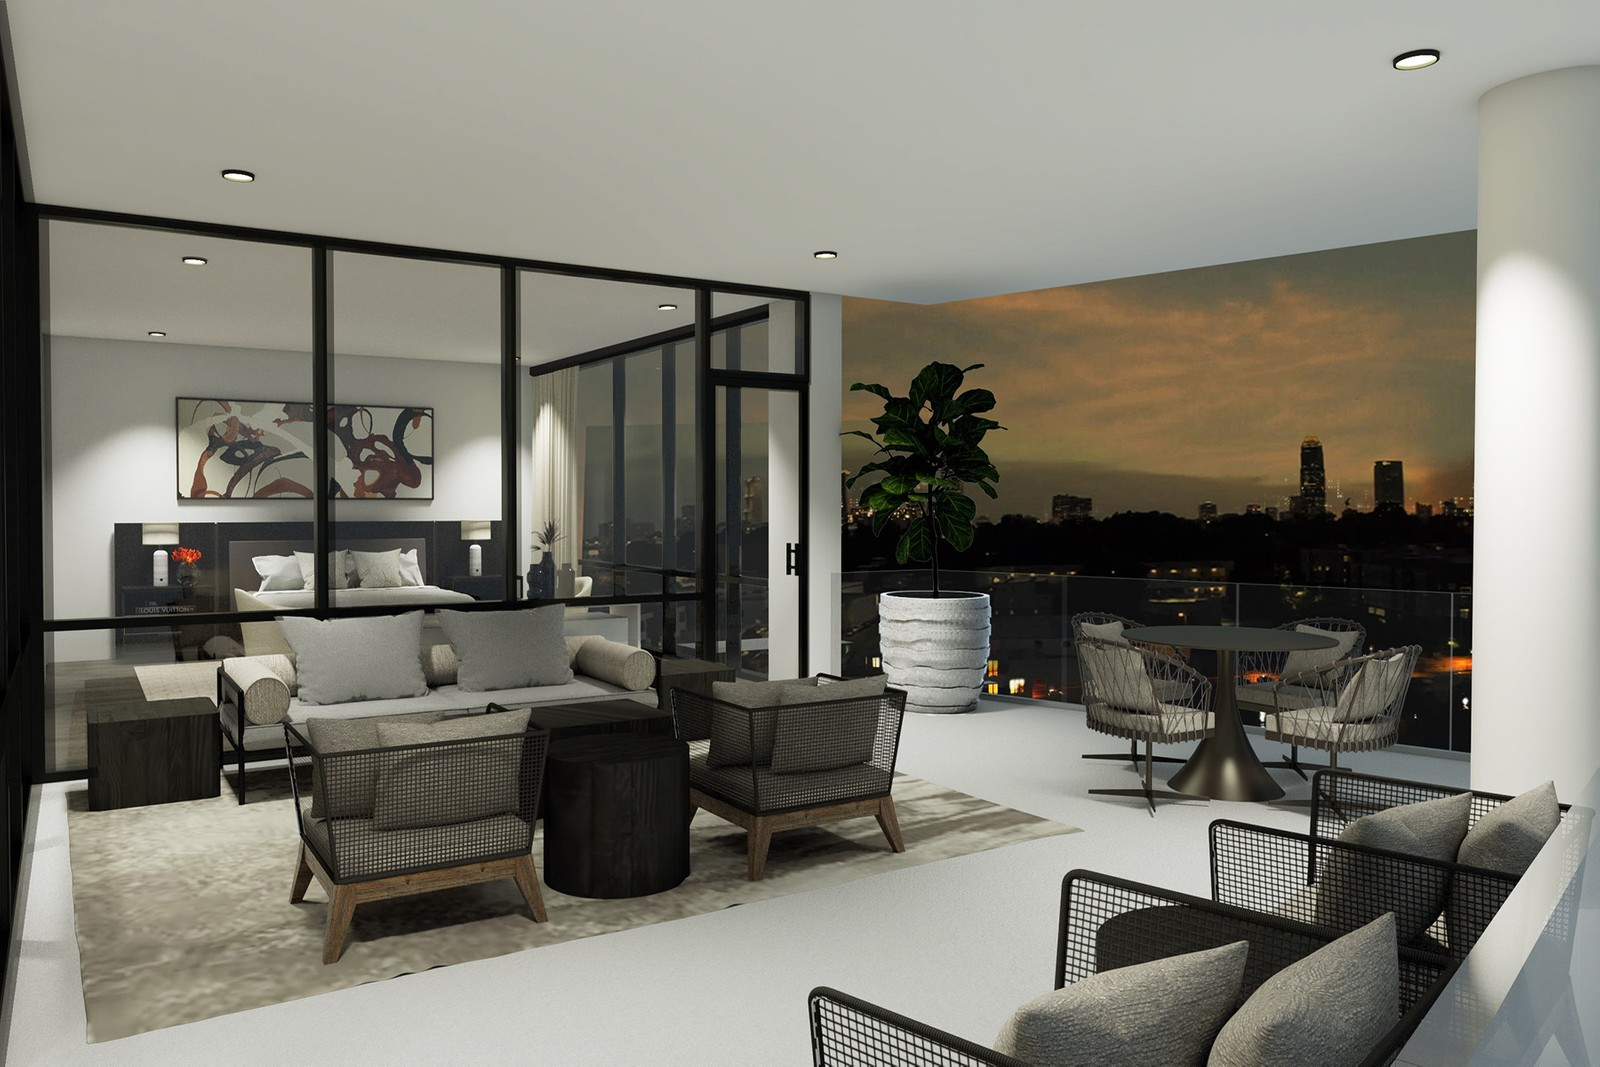 A condo shown in rendering with a huge terrace, bedroom, and city in the distance.